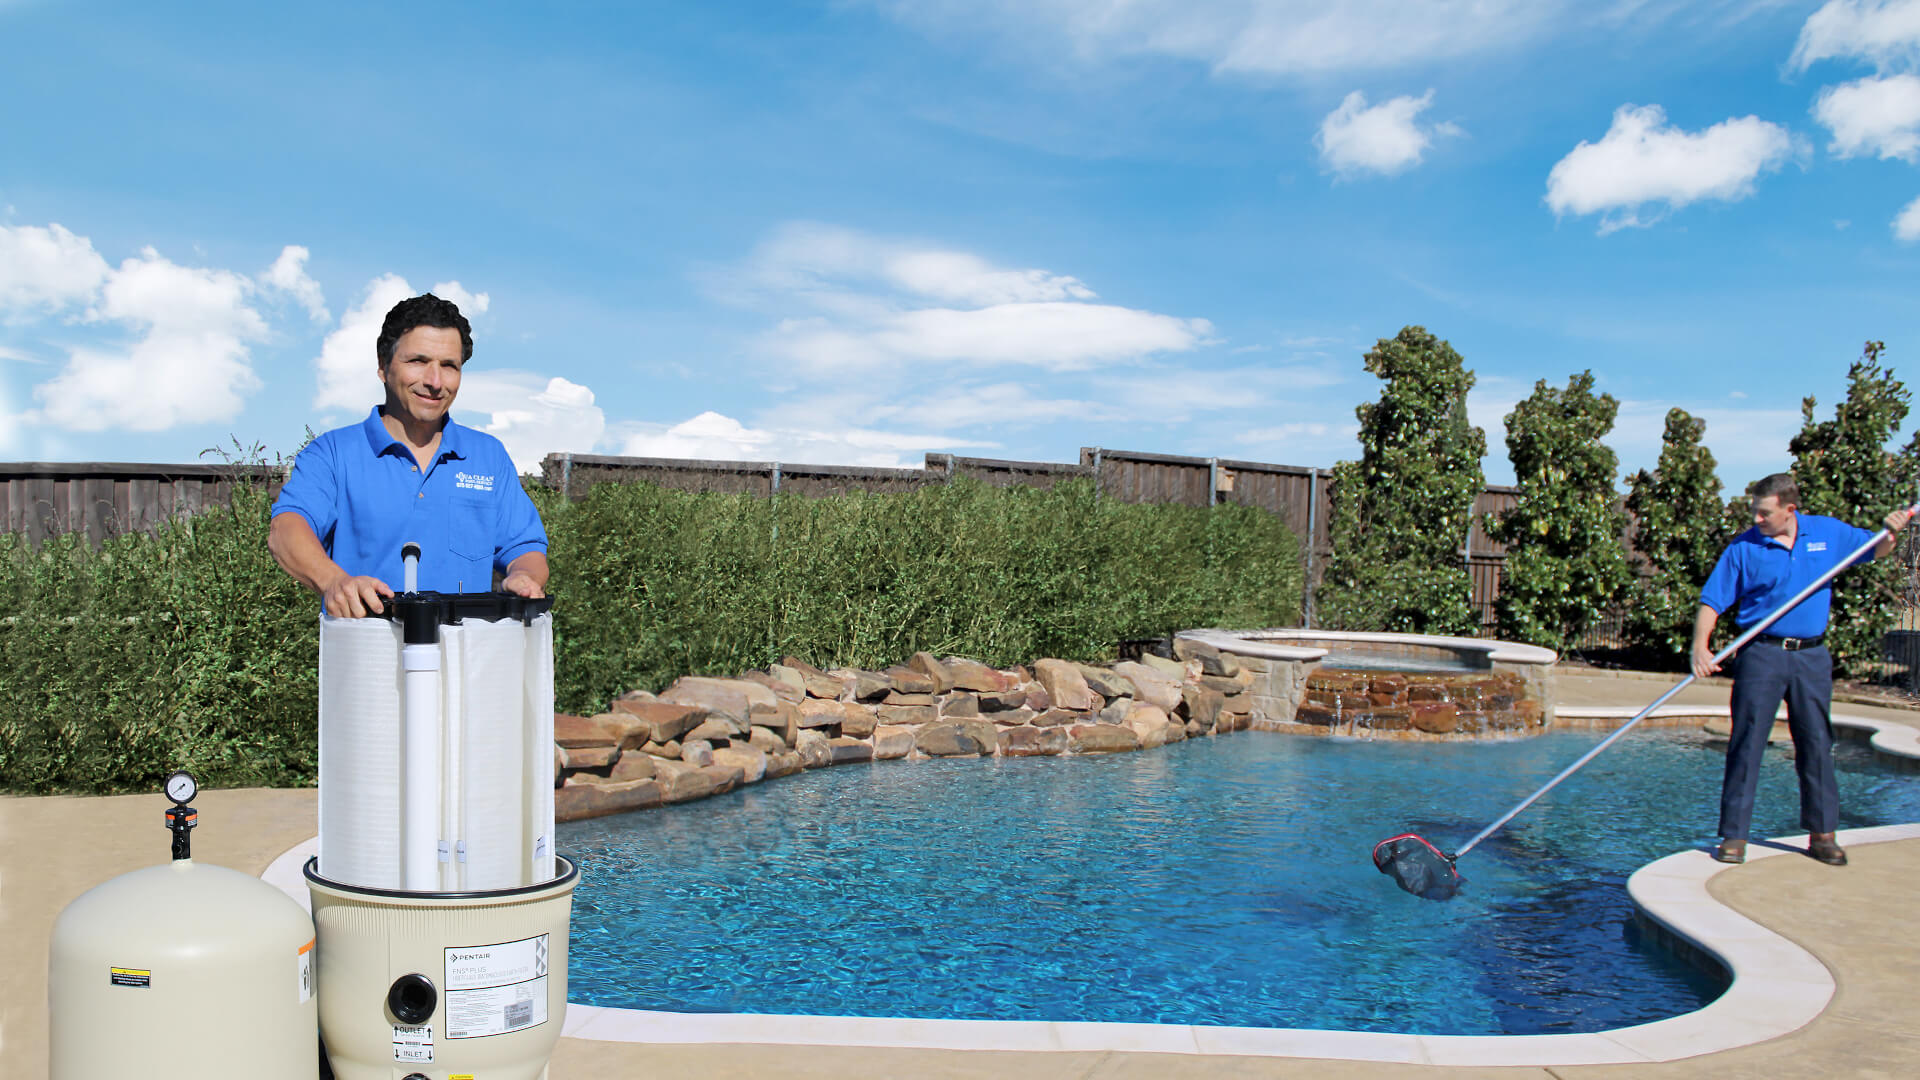 Aqua Clean Pool Service in Plano, TX